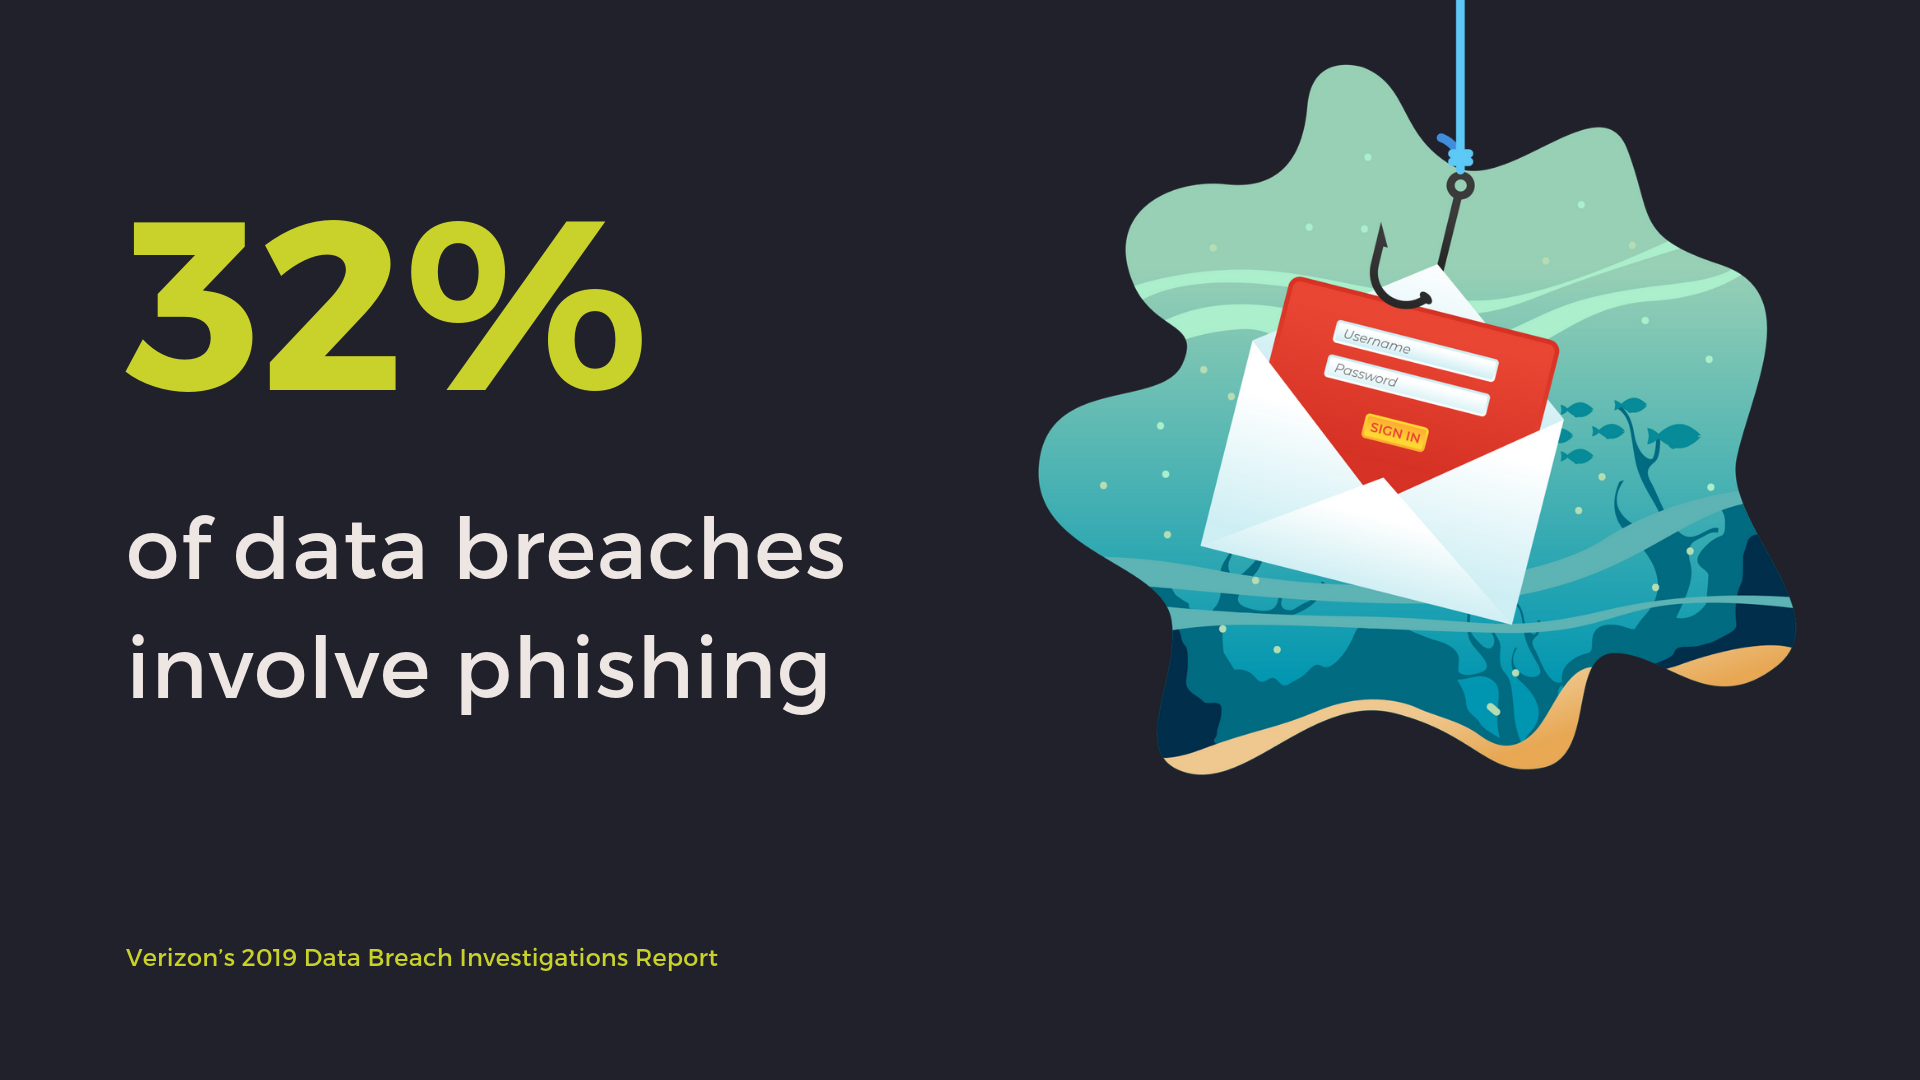 32% of data breaches involve phishing.